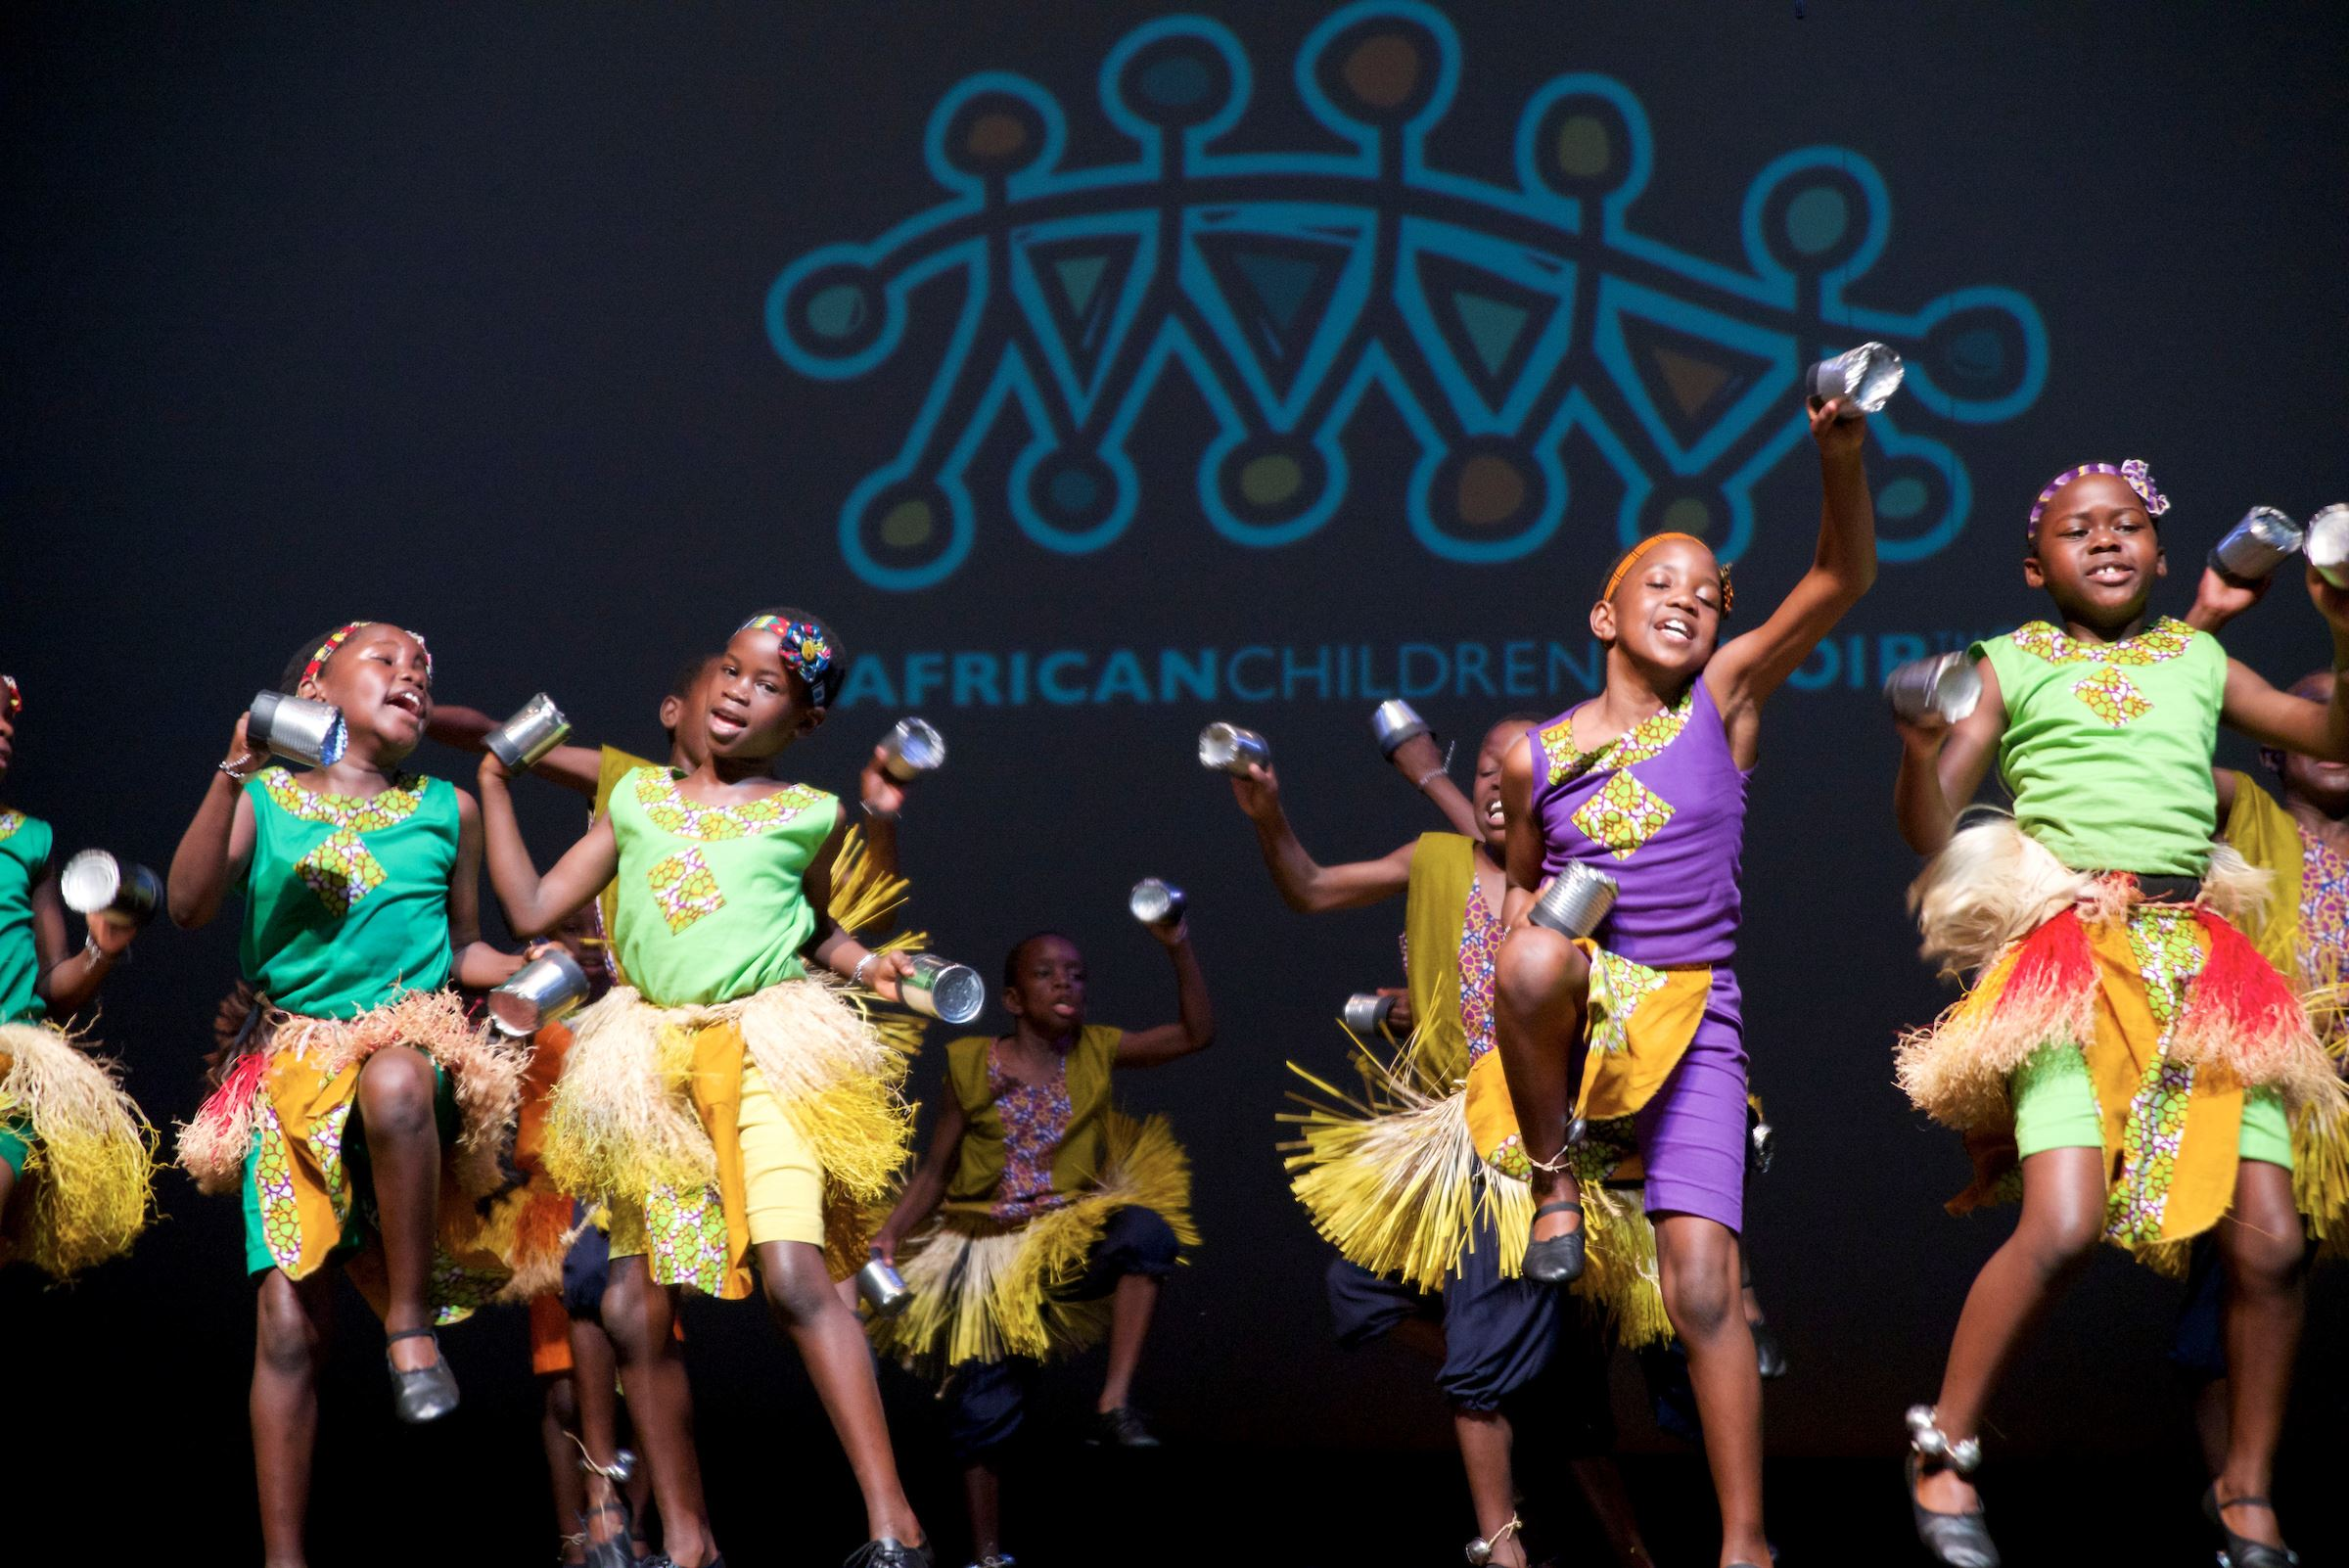 African Childrens Choir  (53)